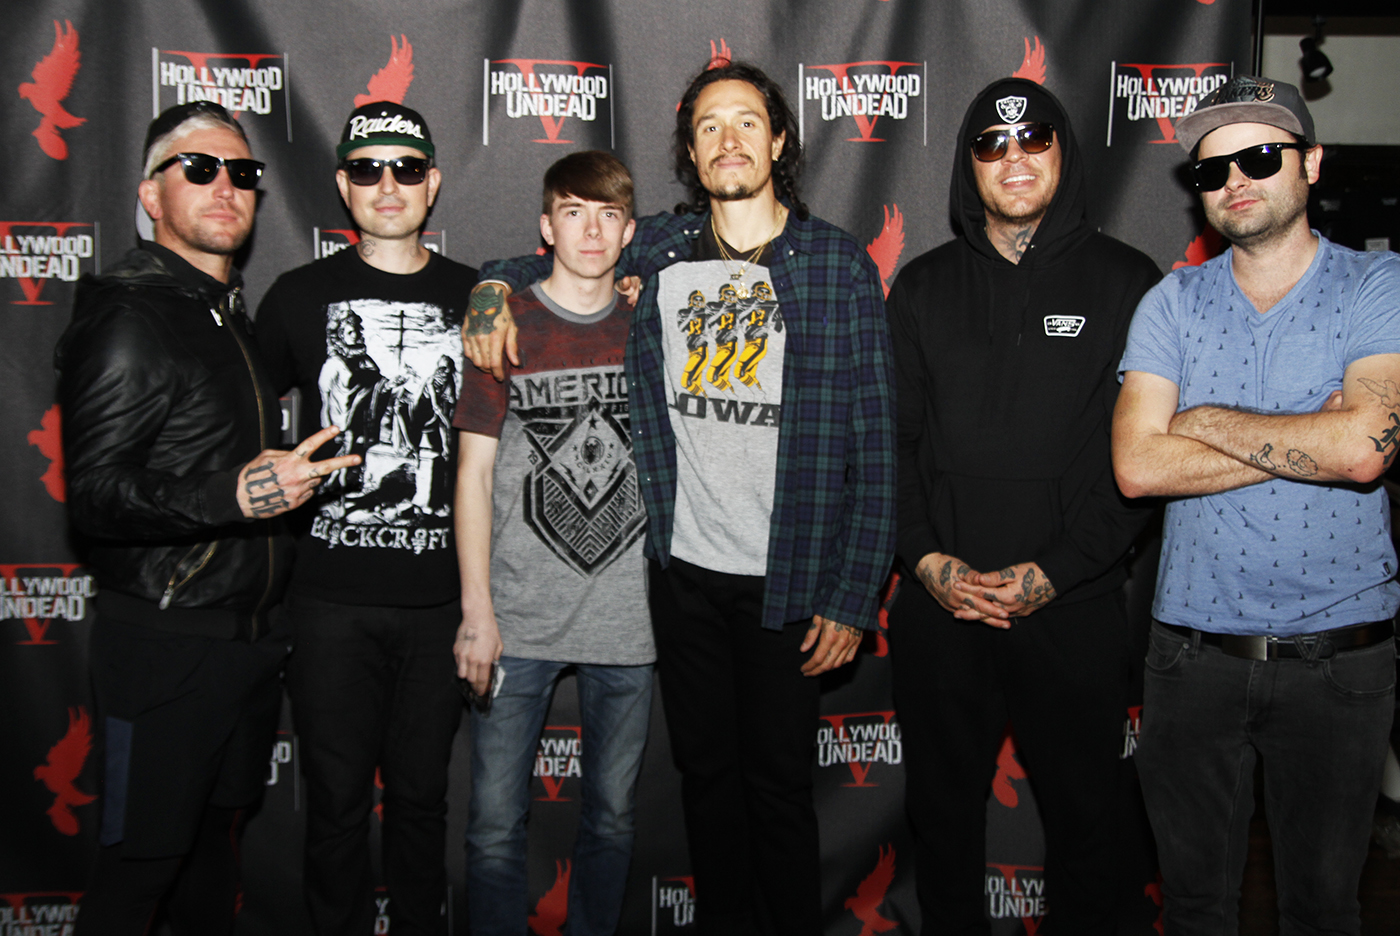 Hollywood undead meet and greet lazer 1033 hollywood undead meet and greet kristyandbryce Gallery